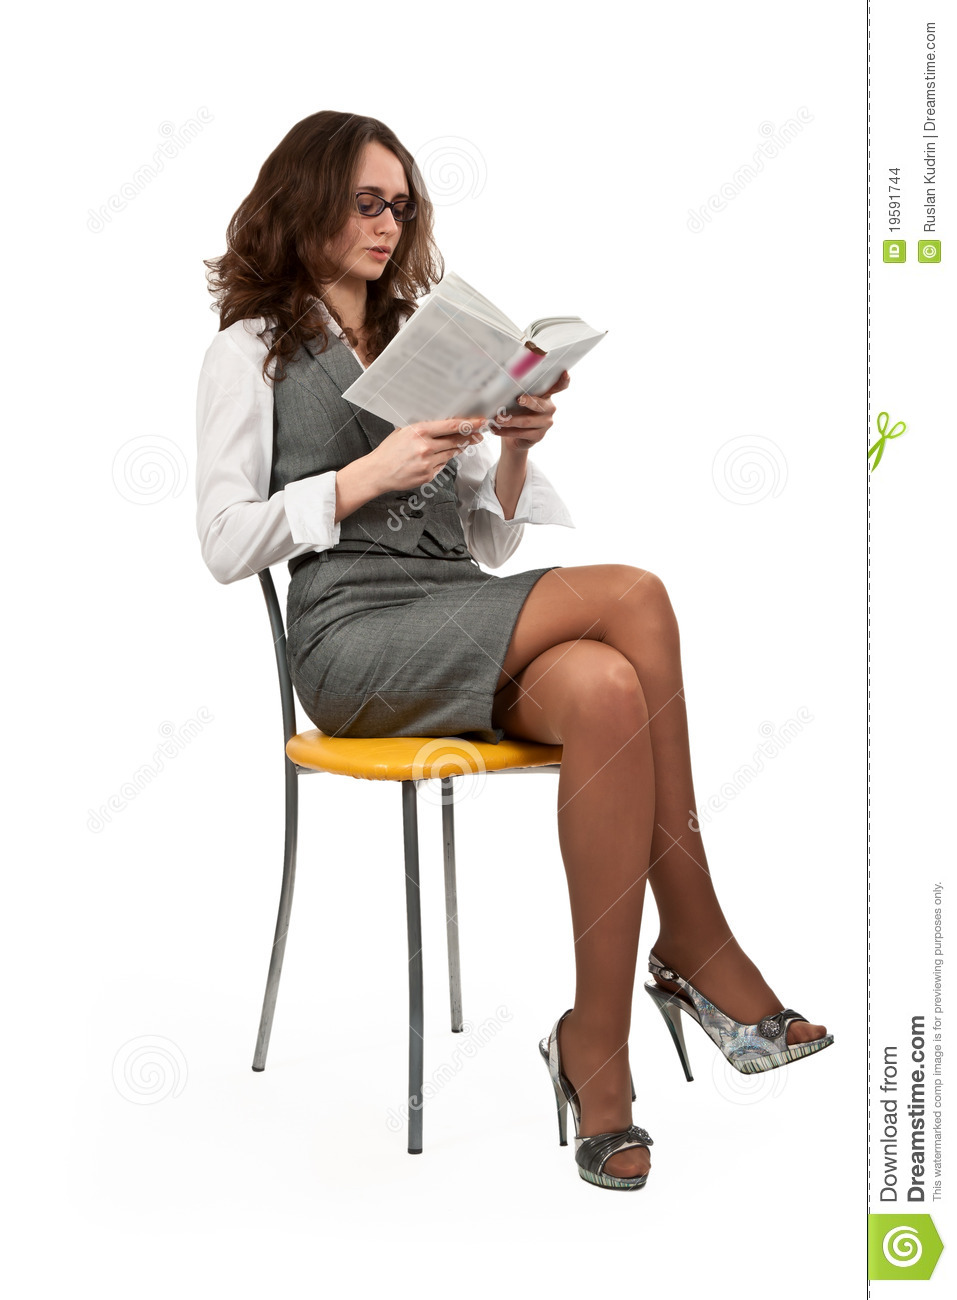 Girl Is Sitting On A Chair And Reading A Book Stock Photo